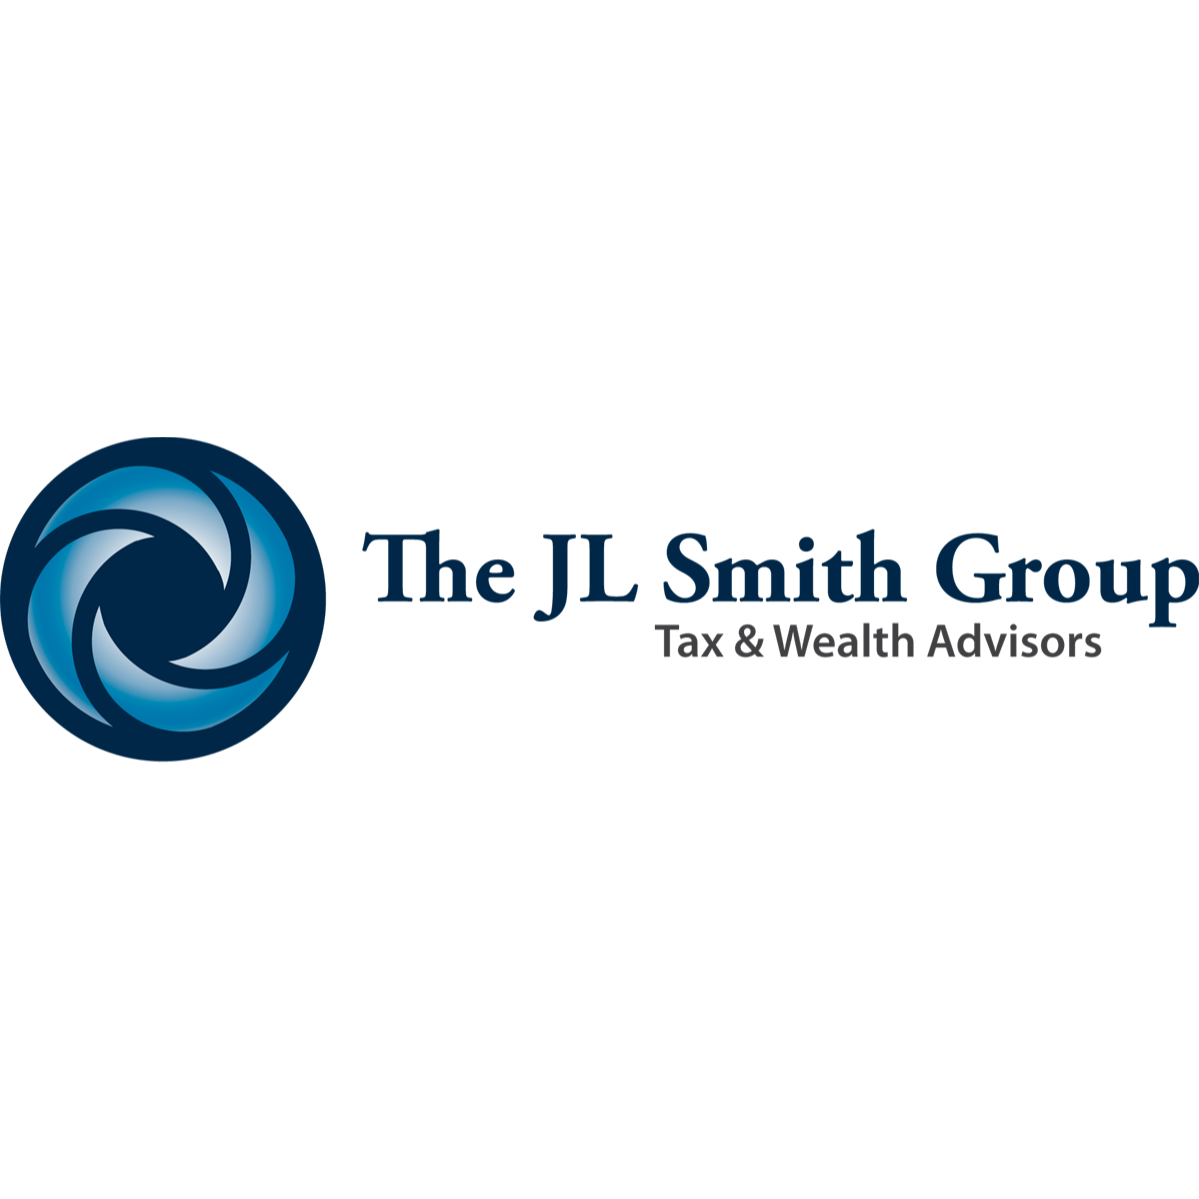 The JL Smith Group